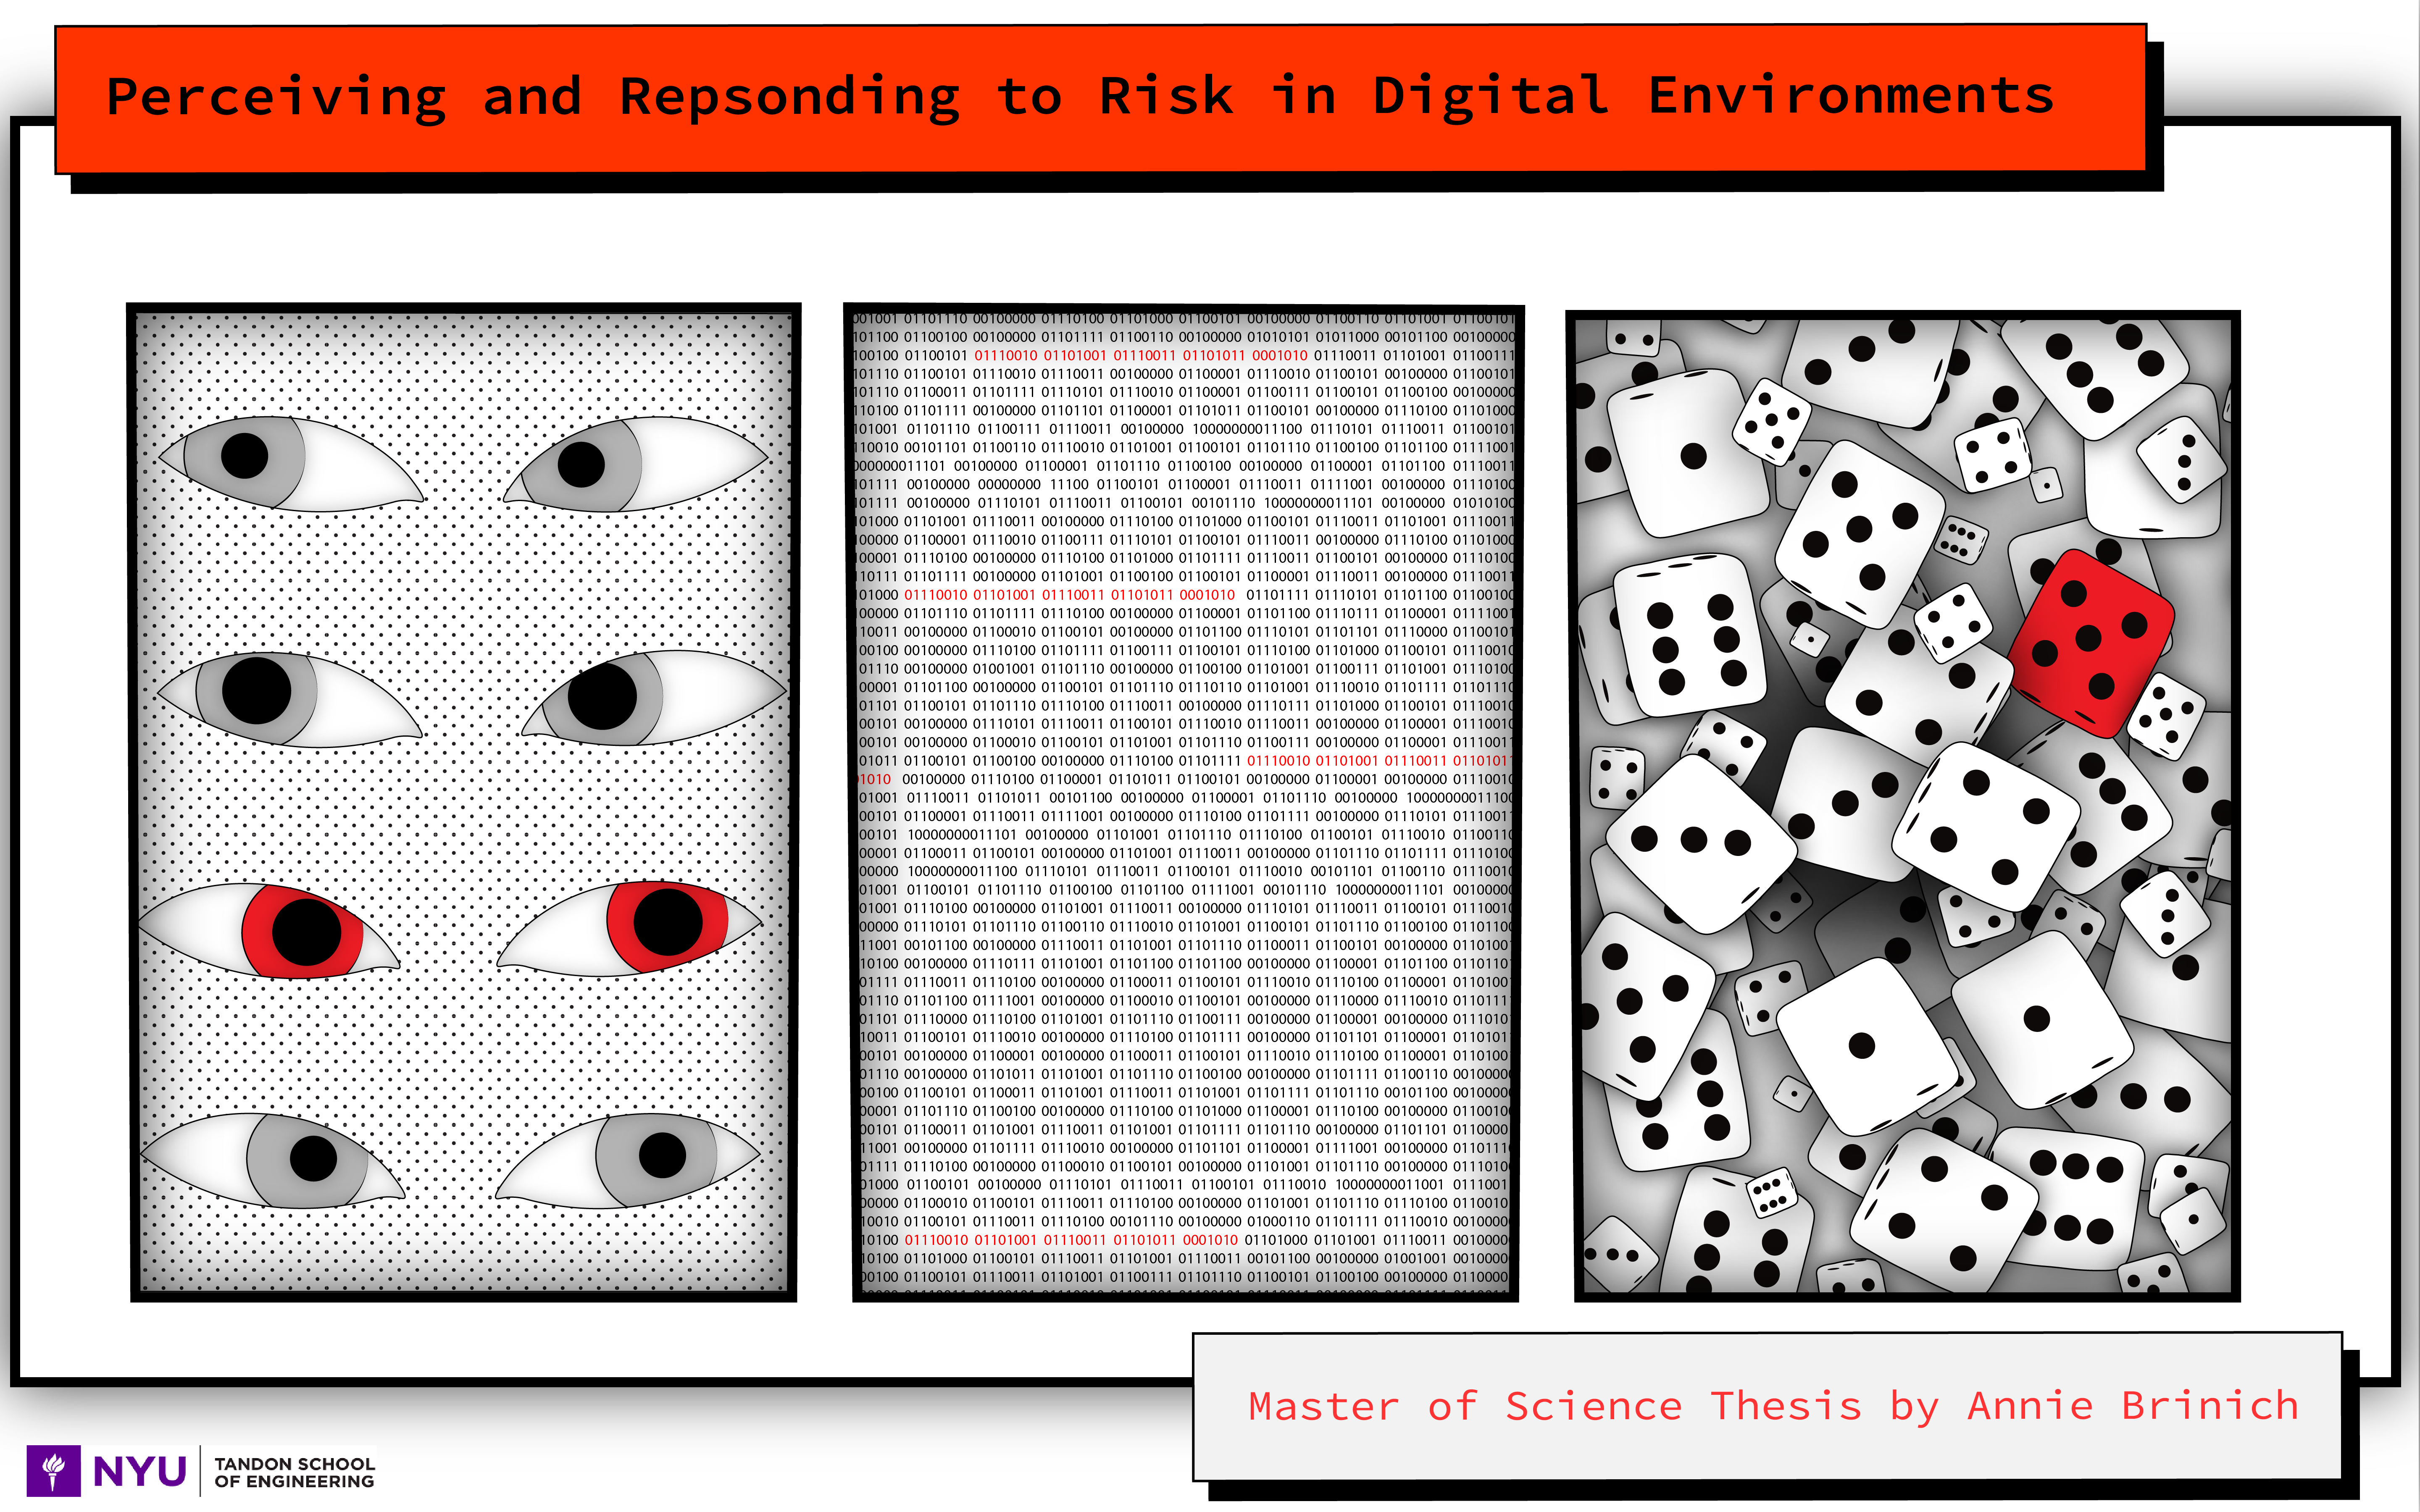 """Photo documentation of """"Risk Perception and Response in Digital Environments"""" by Annie Brinich"""